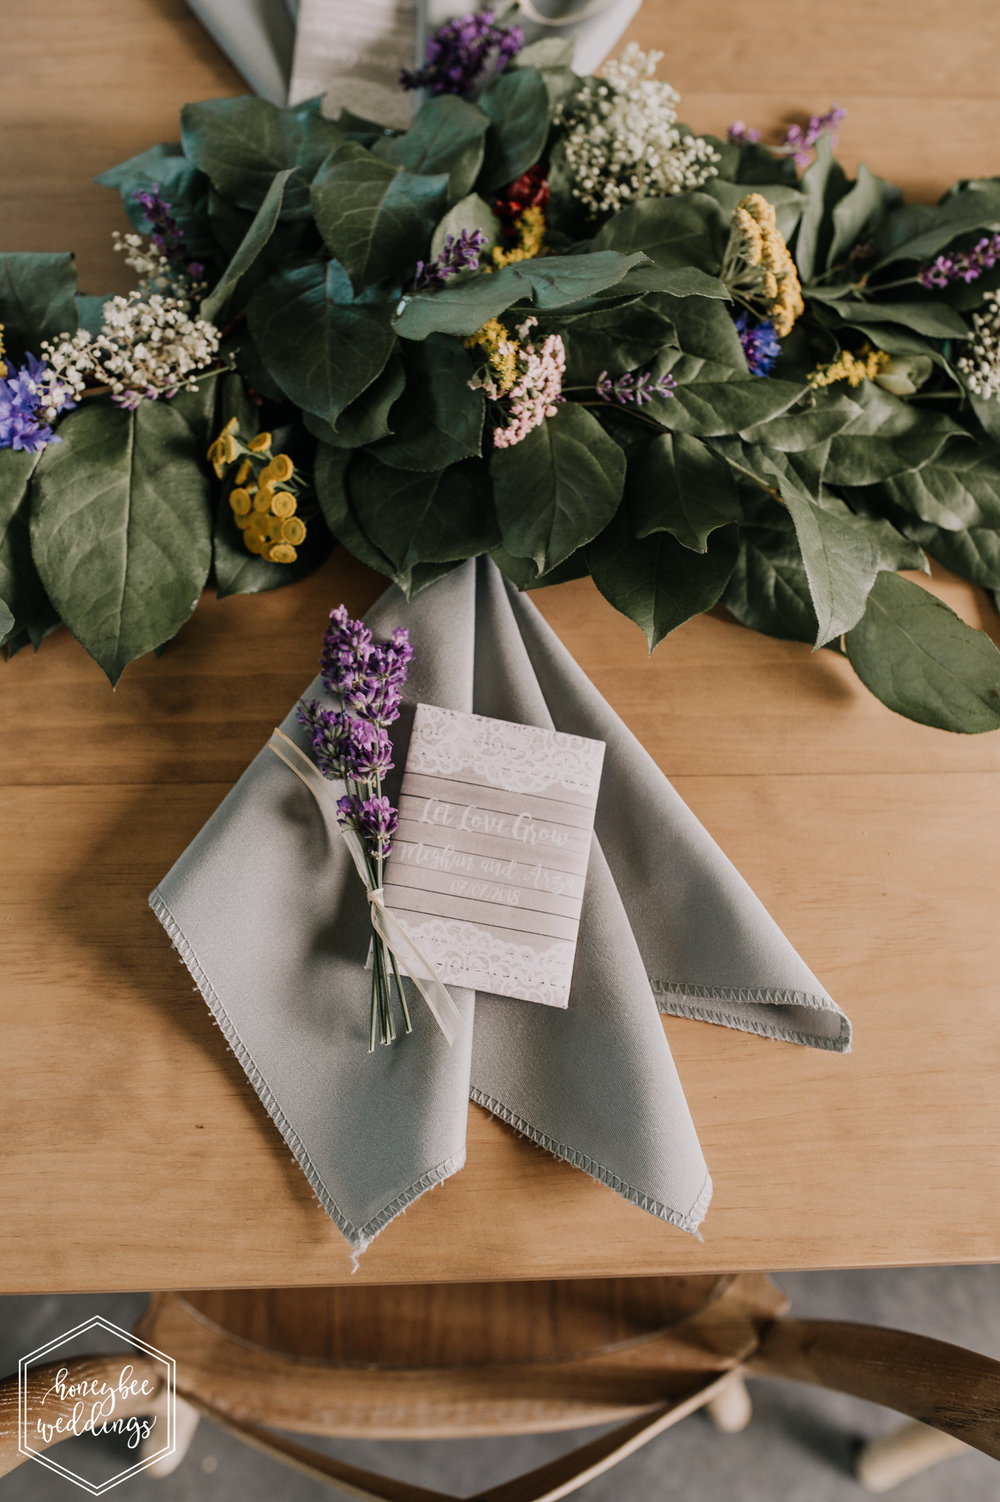 43 White Raven Wedding_Montana Wedding Photographer_Honeybee Weddings_ Meghan Maloney + Arza Hammond 2018-9985-2.jpg